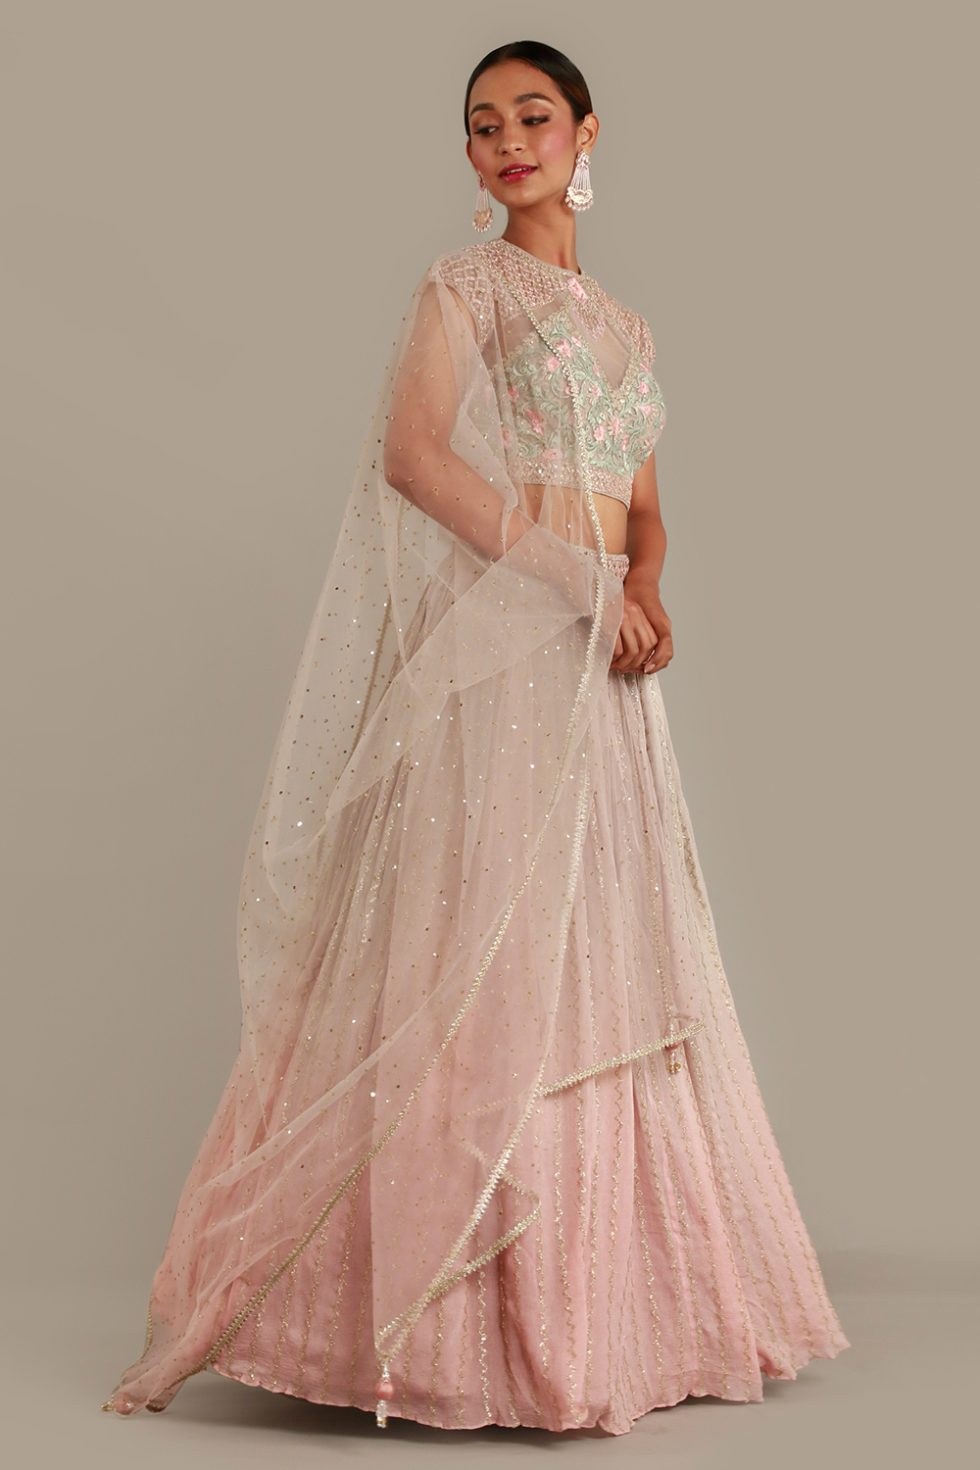 Steel grey to pink ombré lehenga set with coloured embroidered choli, matching dupatta and gold embellishments